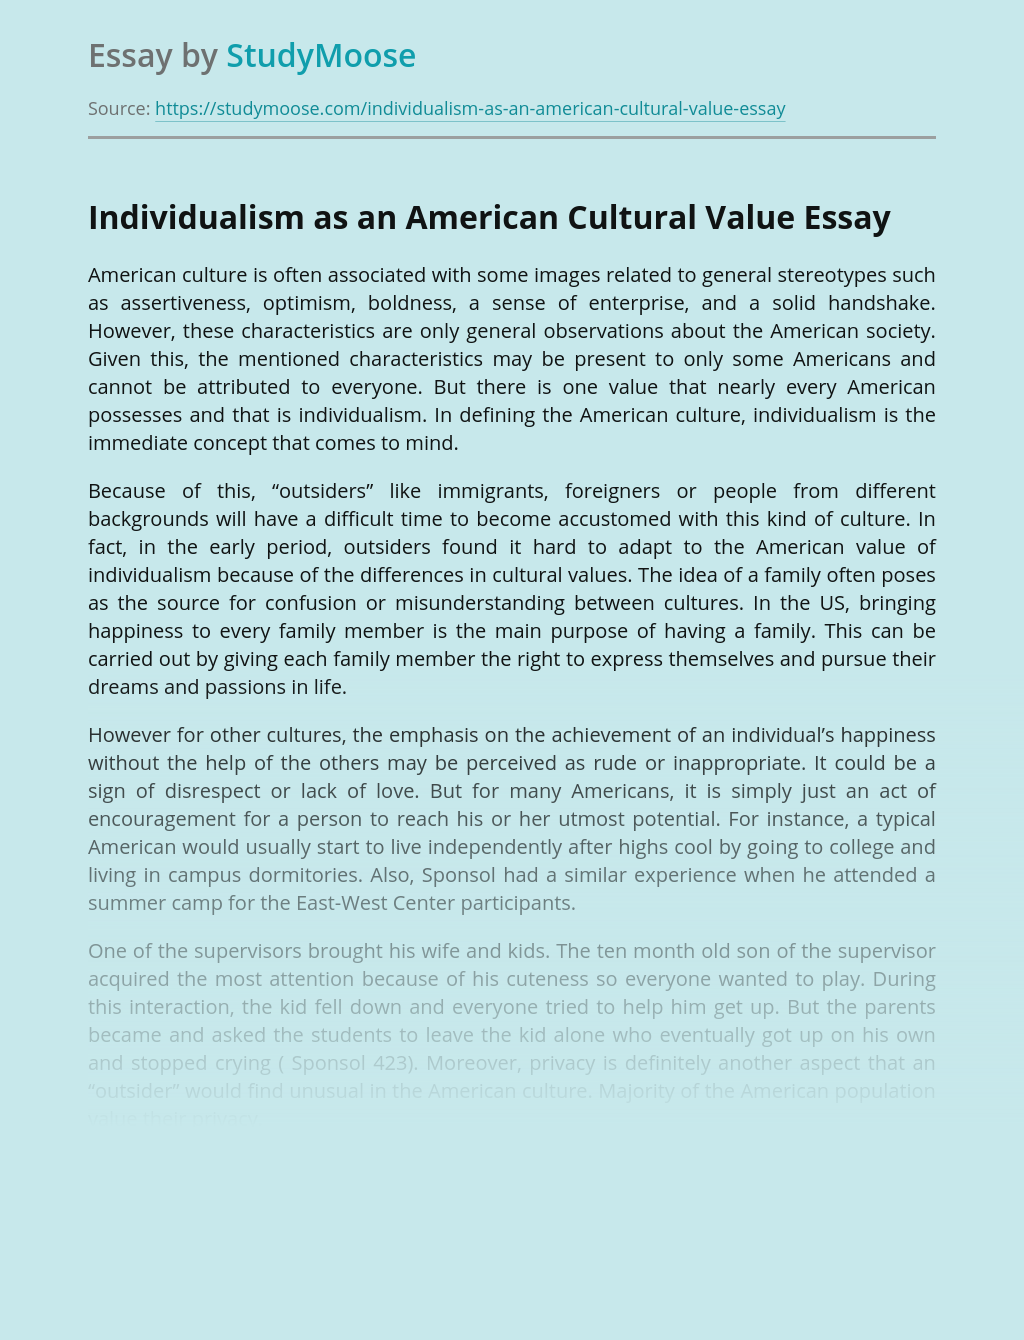 Individualism as an American Cultural Value